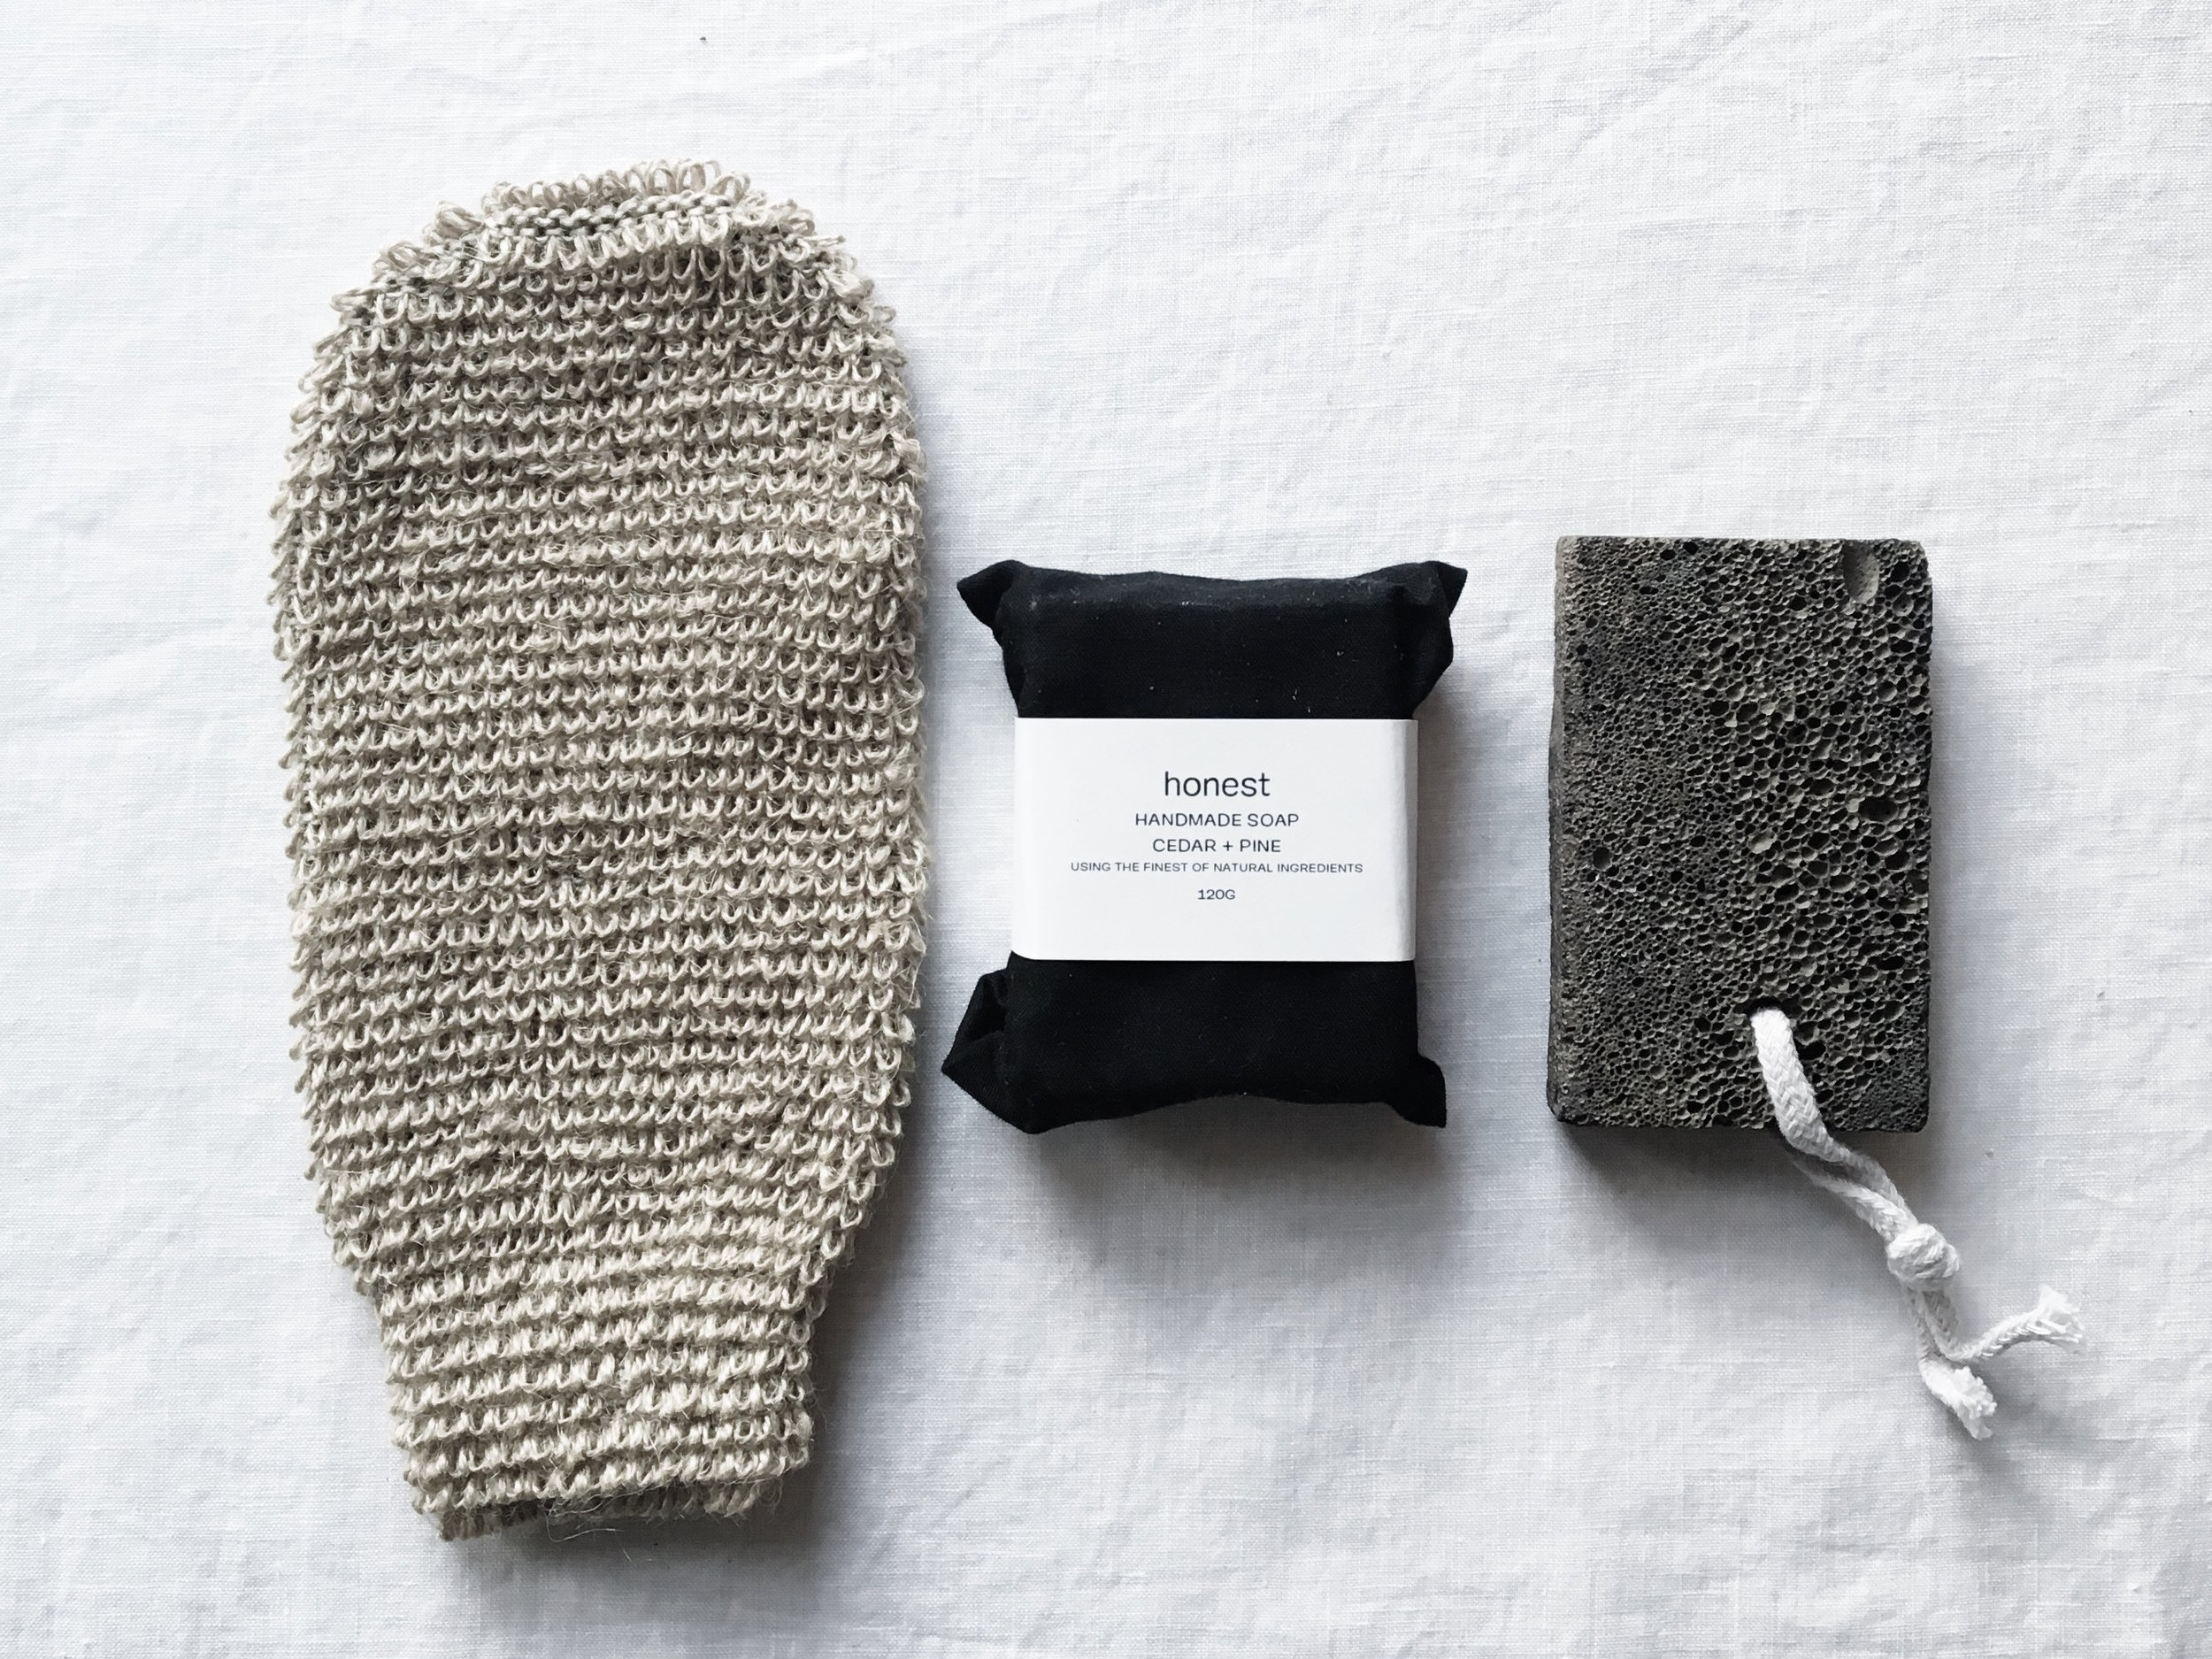 Face & Body Mitt  (£3) ,  Natural Foot Stone  (£5) and  Cedar + Pine Soap  (£12) from  Honest Skincare .